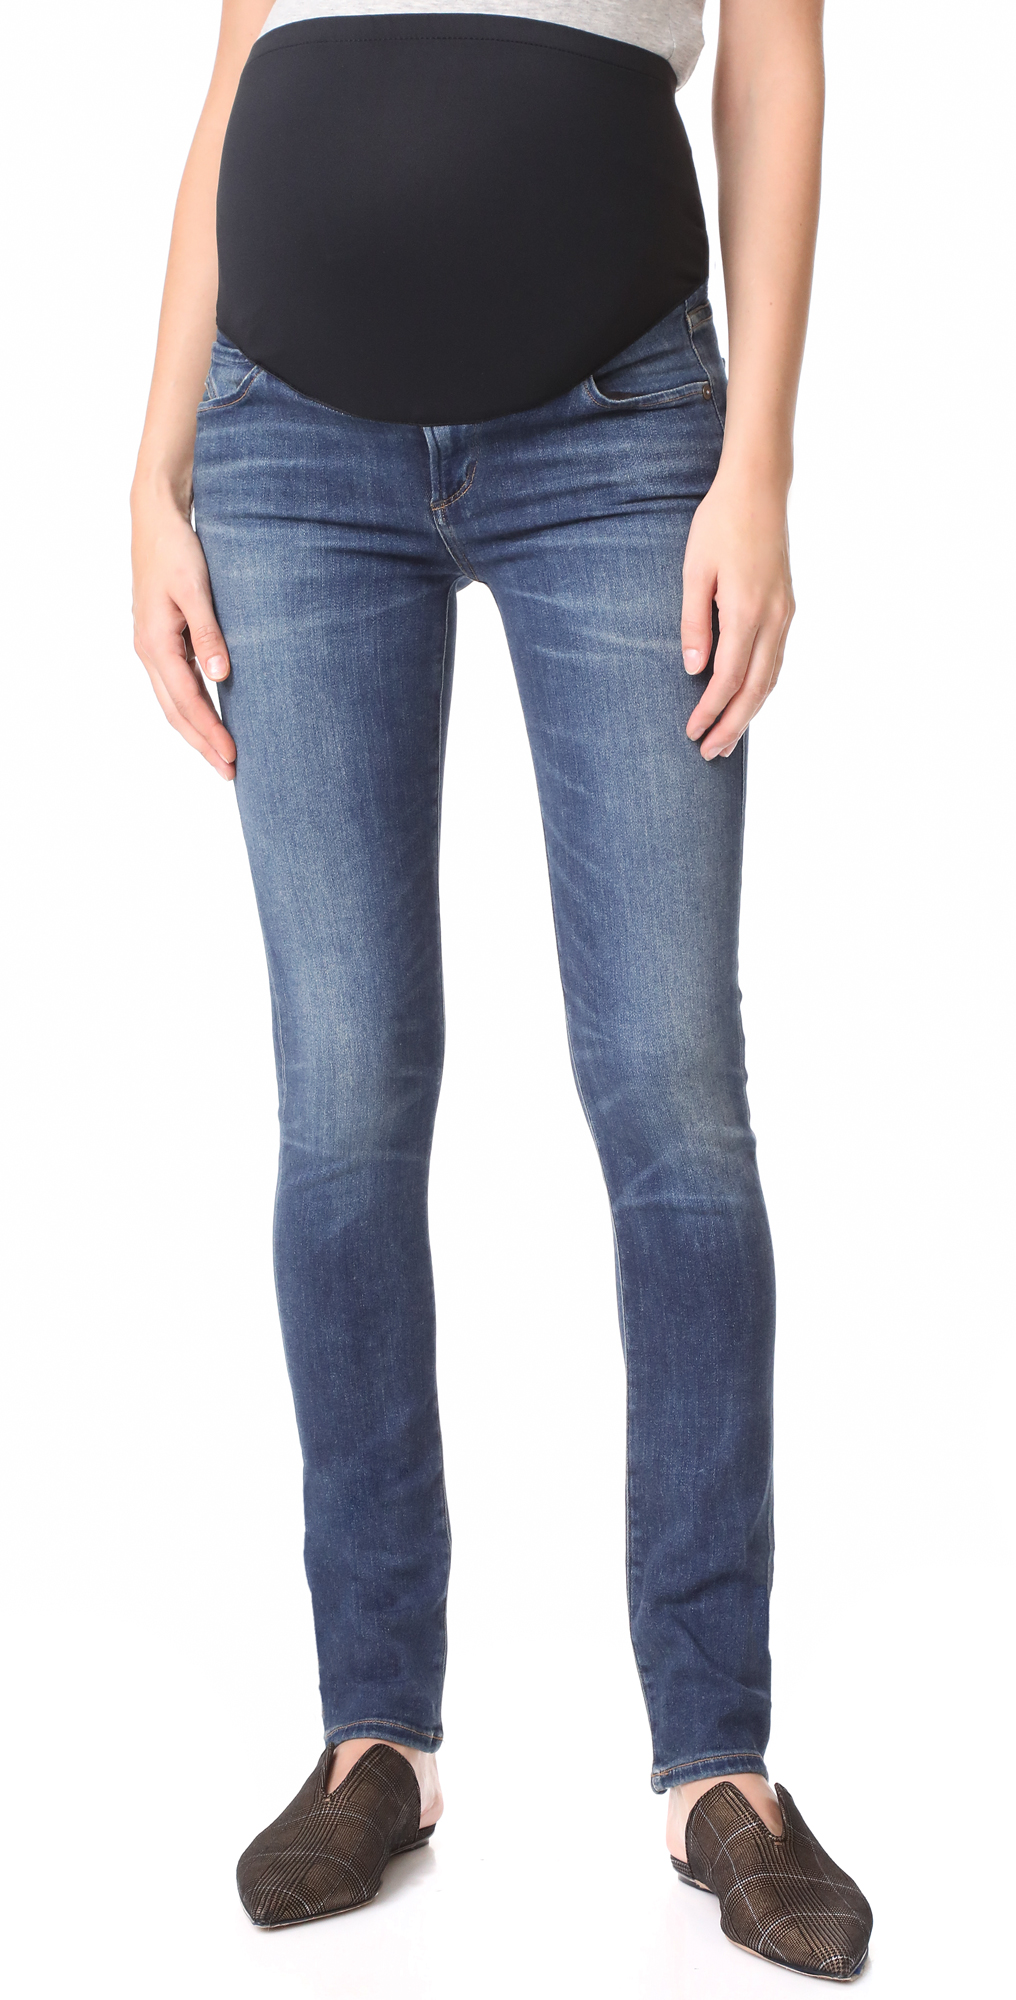 Avedon Skinny Maternity Jeans Citizens of Humanity